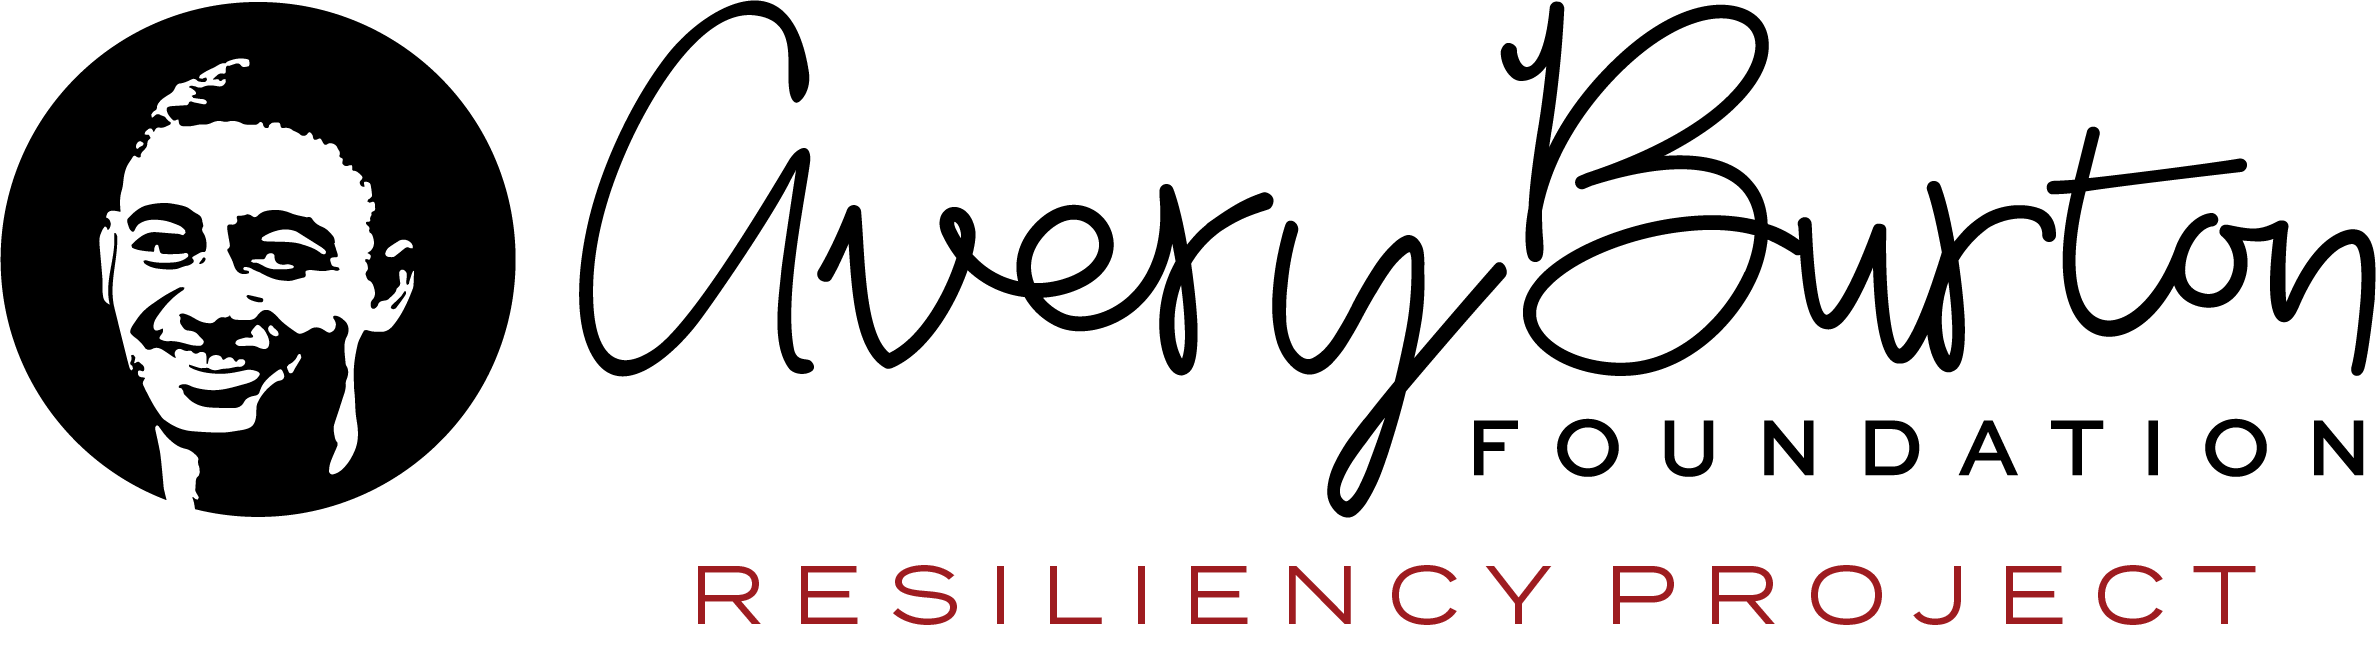 ABF Resiliency Project